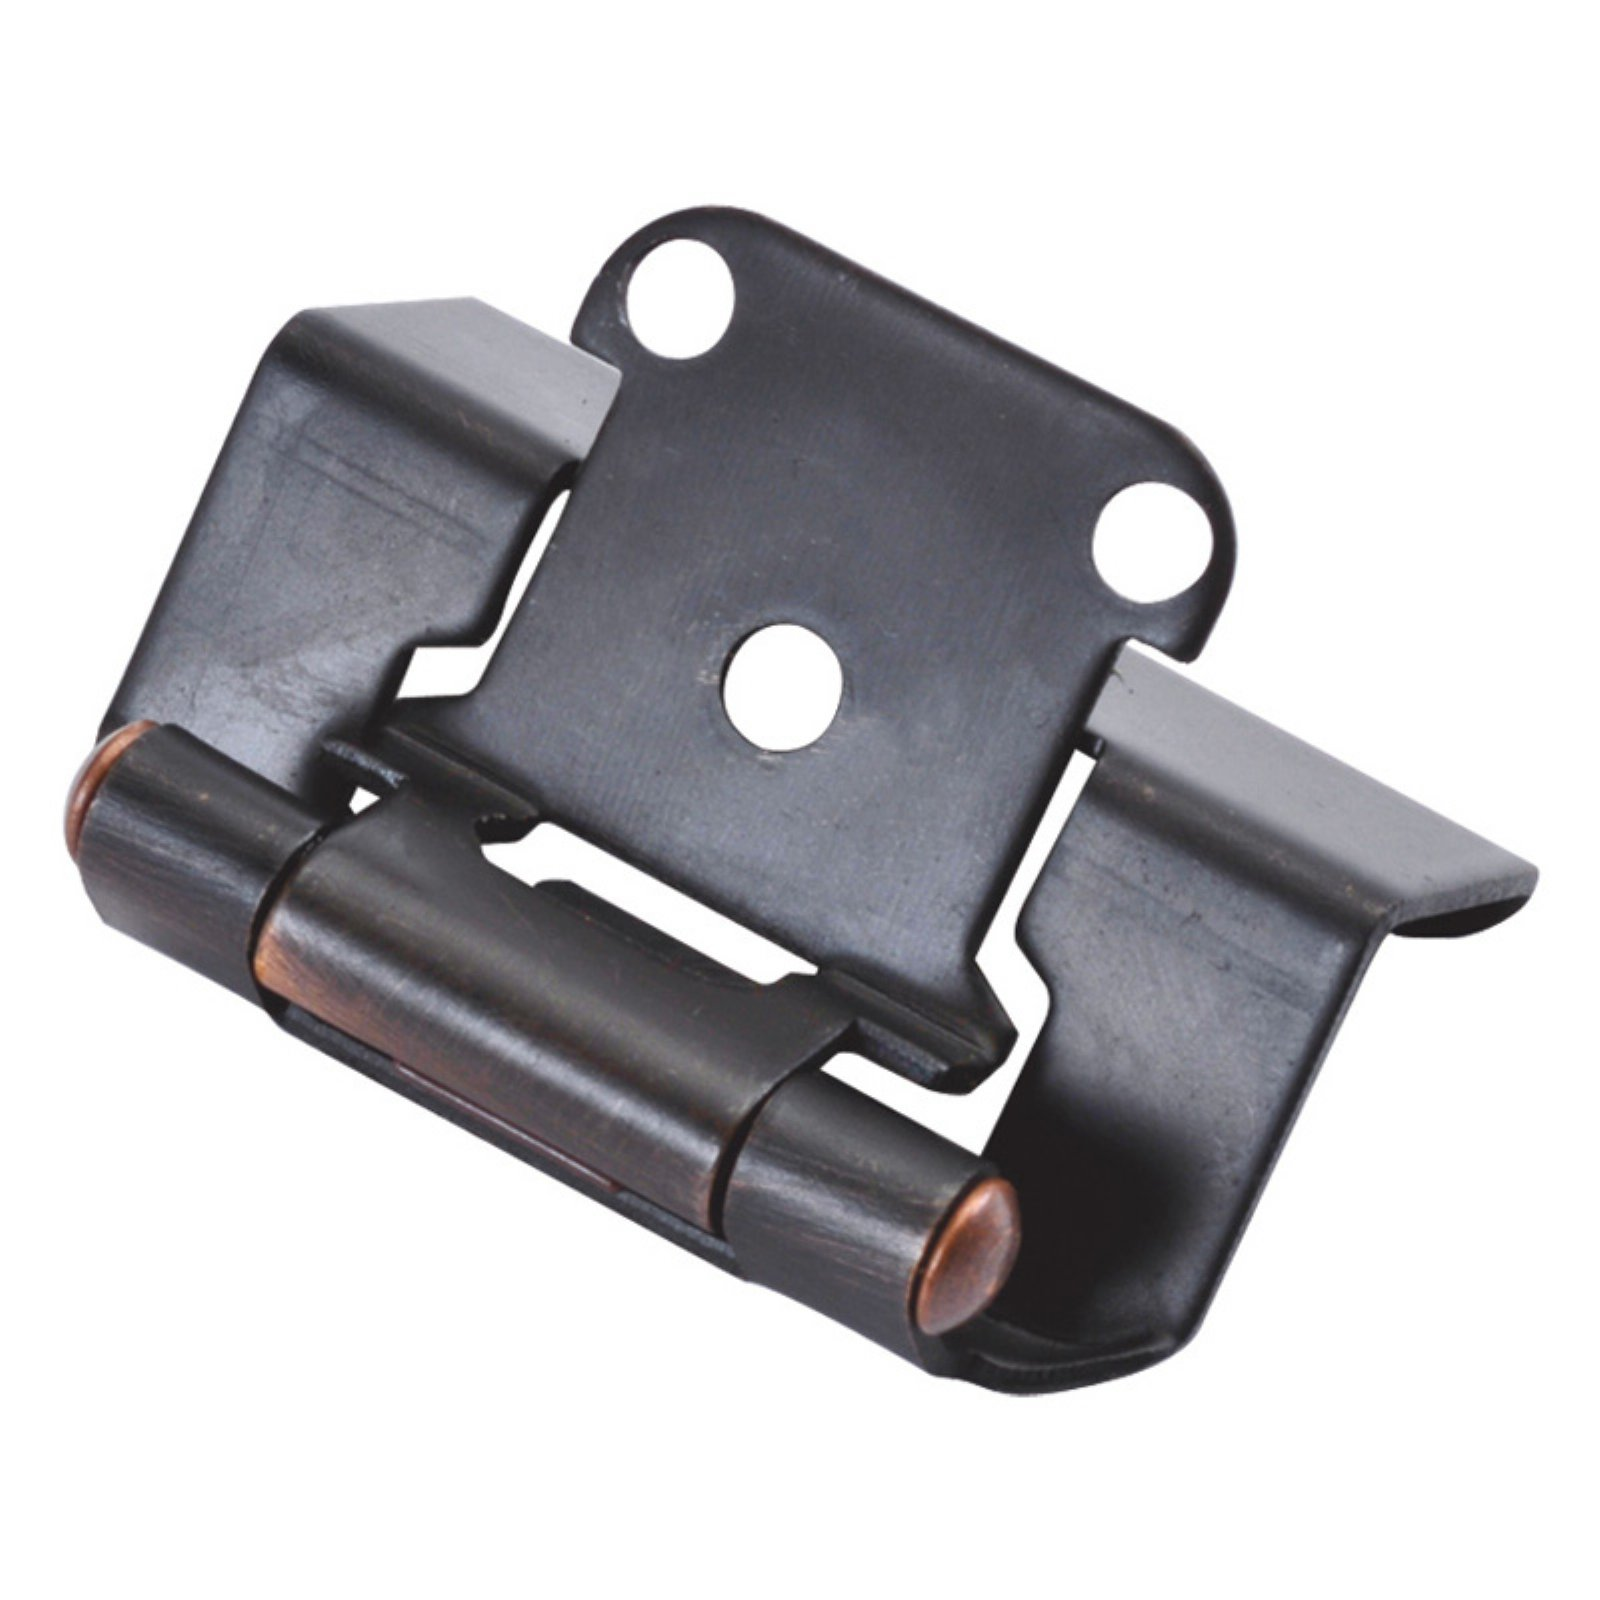 Hickory Hardware Full Wrap Hinge - Set of 2